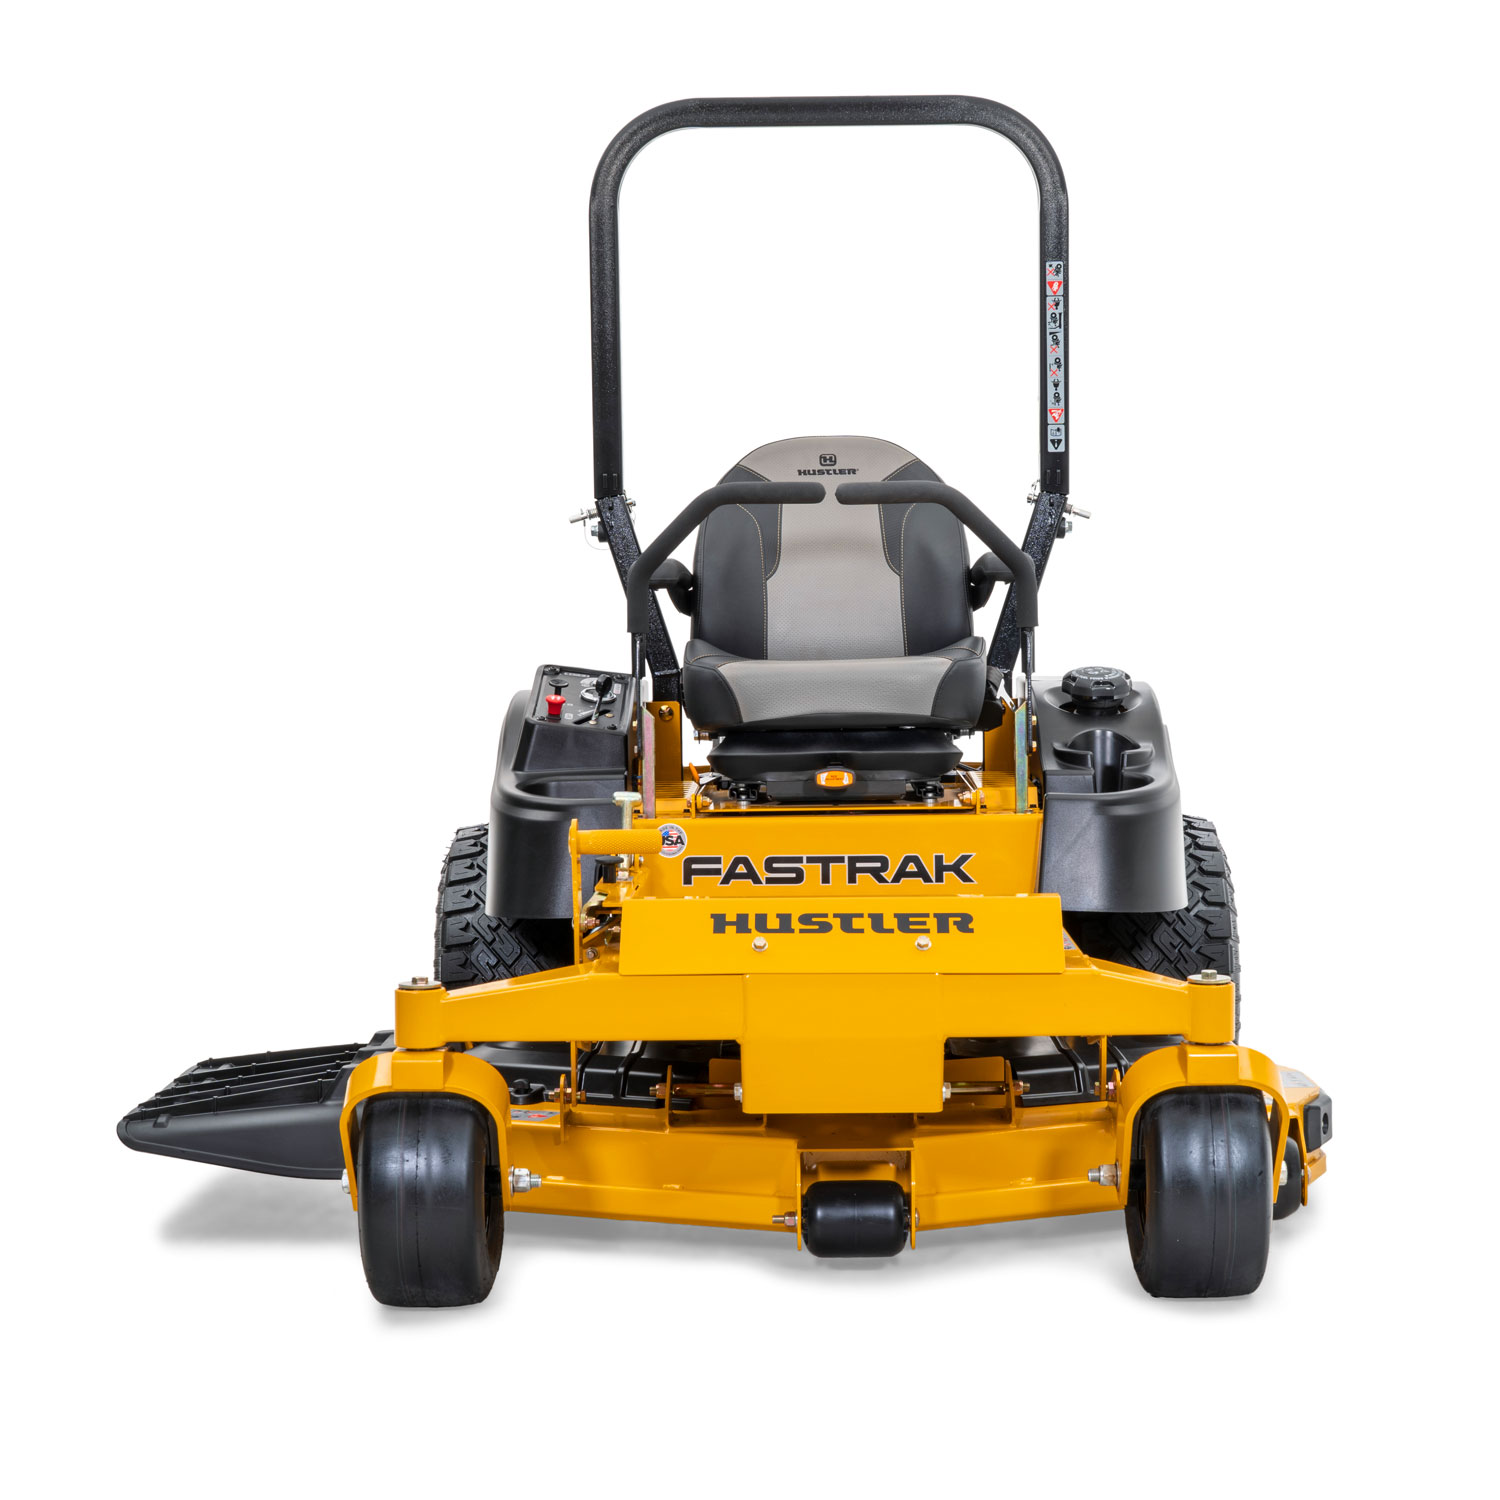 Image of front of a yellow riding mower